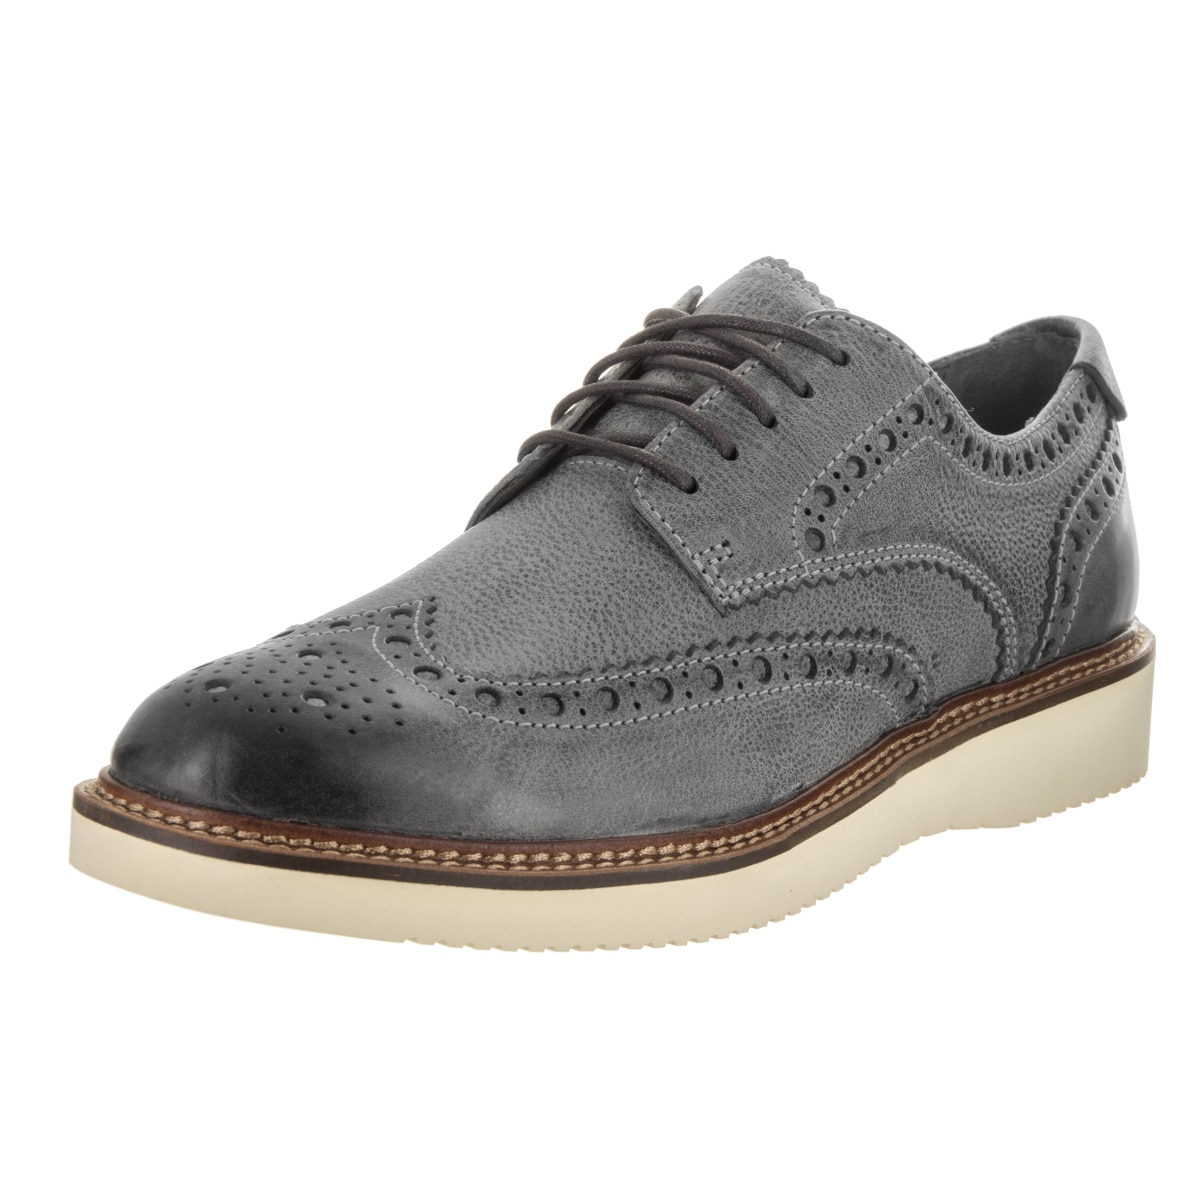 Gold Wingtip Wedge Oxford Shoe